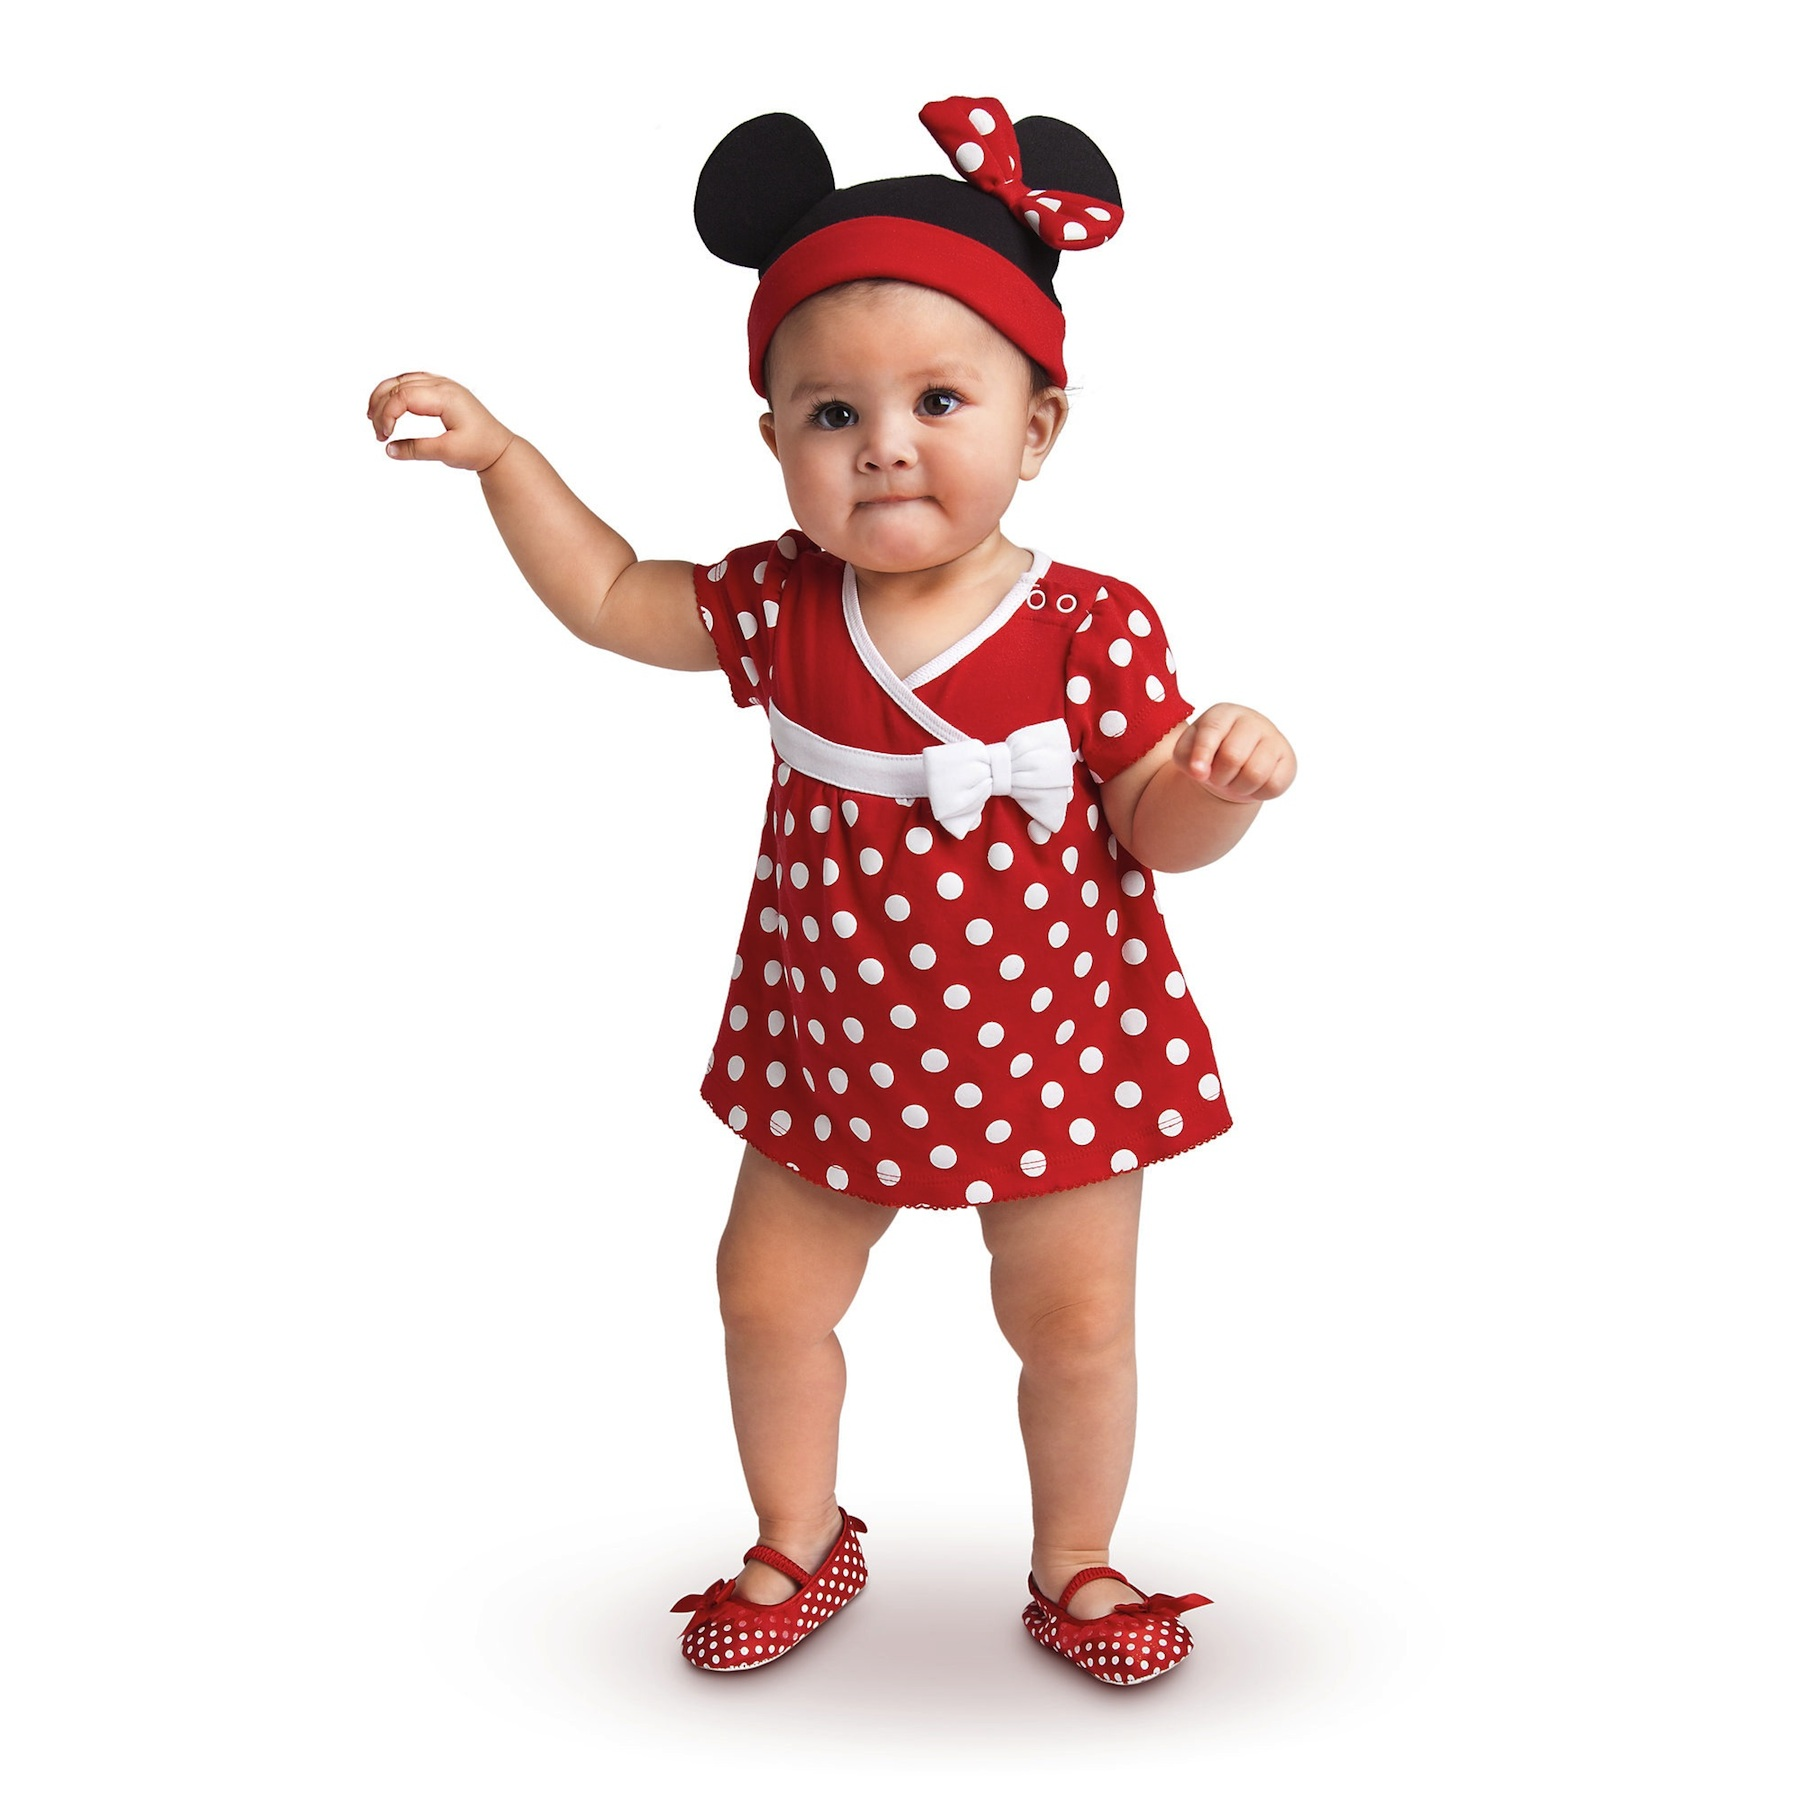 the gallery for red minnie mouse costume toddler. Black Bedroom Furniture Sets. Home Design Ideas